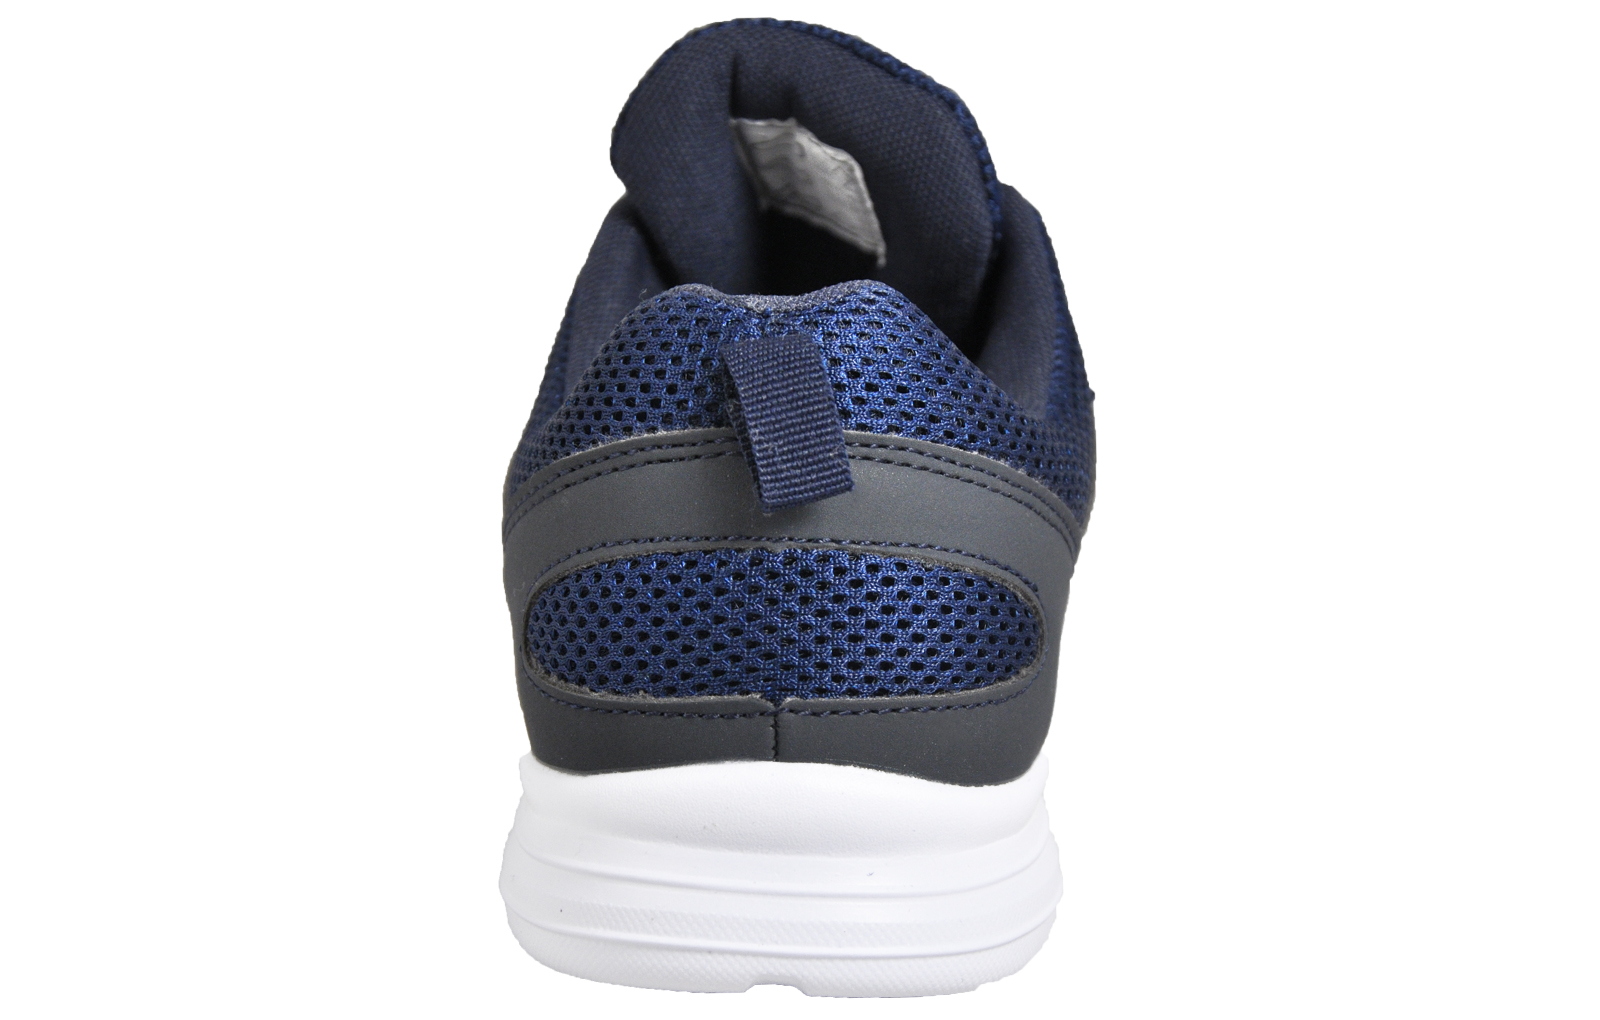 4e7f3a9dfab Airtech Rebel Mens Superlite Slip On Shock Absorbing Fitness Trainers Navy